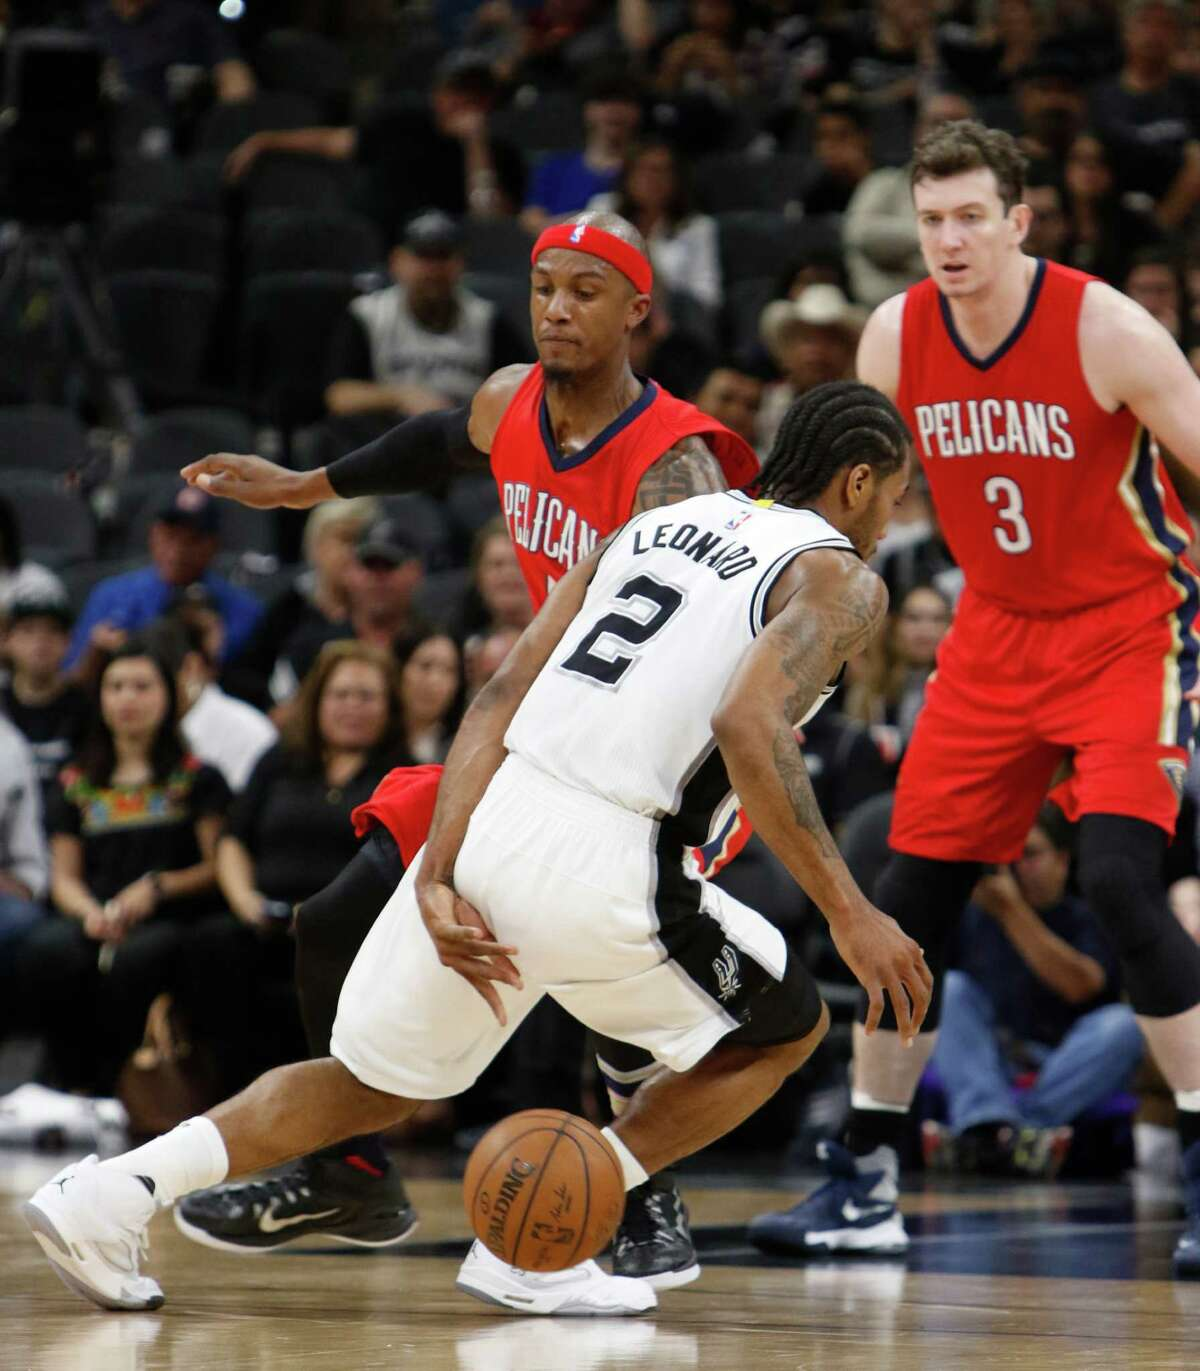 SAN ANTONIO,TX - MARCH 30: Kawhi Leonard #2 of the San Antonio Spurs dribbles behind his back in front of Dante Cunningham #44 of the New Orleans Pelicans at AT&T Center on March 30, 2016 in San Antonio, Texas. NOTE TO USER: User expressly acknowledges and agrees that , by downloading and or using this photograph, User is consenting to the terms and conditions of the Getty Images License Agreement. (Photo by Ronald Cortes/Getty Images) *** local caption ***Kawhi Leonard; Dante Cunningham